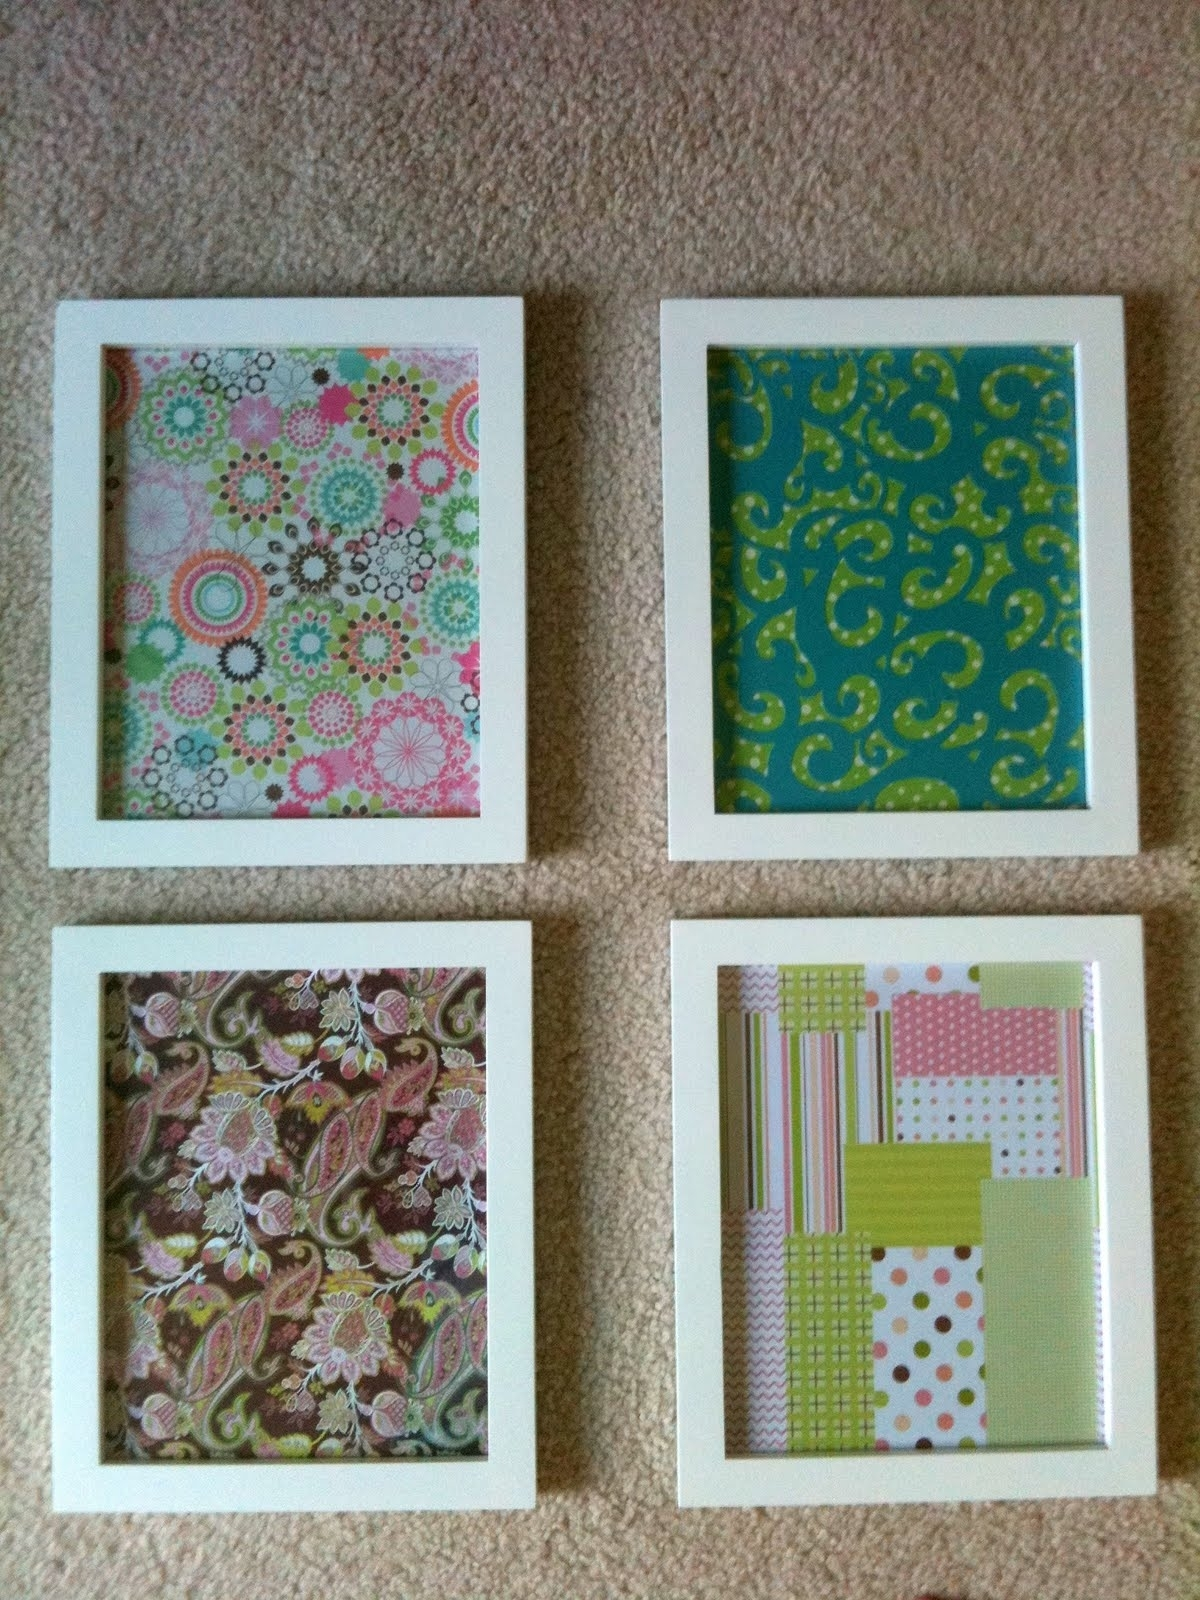 Diy Nursery Wall Decor Ideas With Beautiful Pa #84 – Green Way Parc Pertaining To Most Current Fabric Wall Art Frames (View 9 of 15)